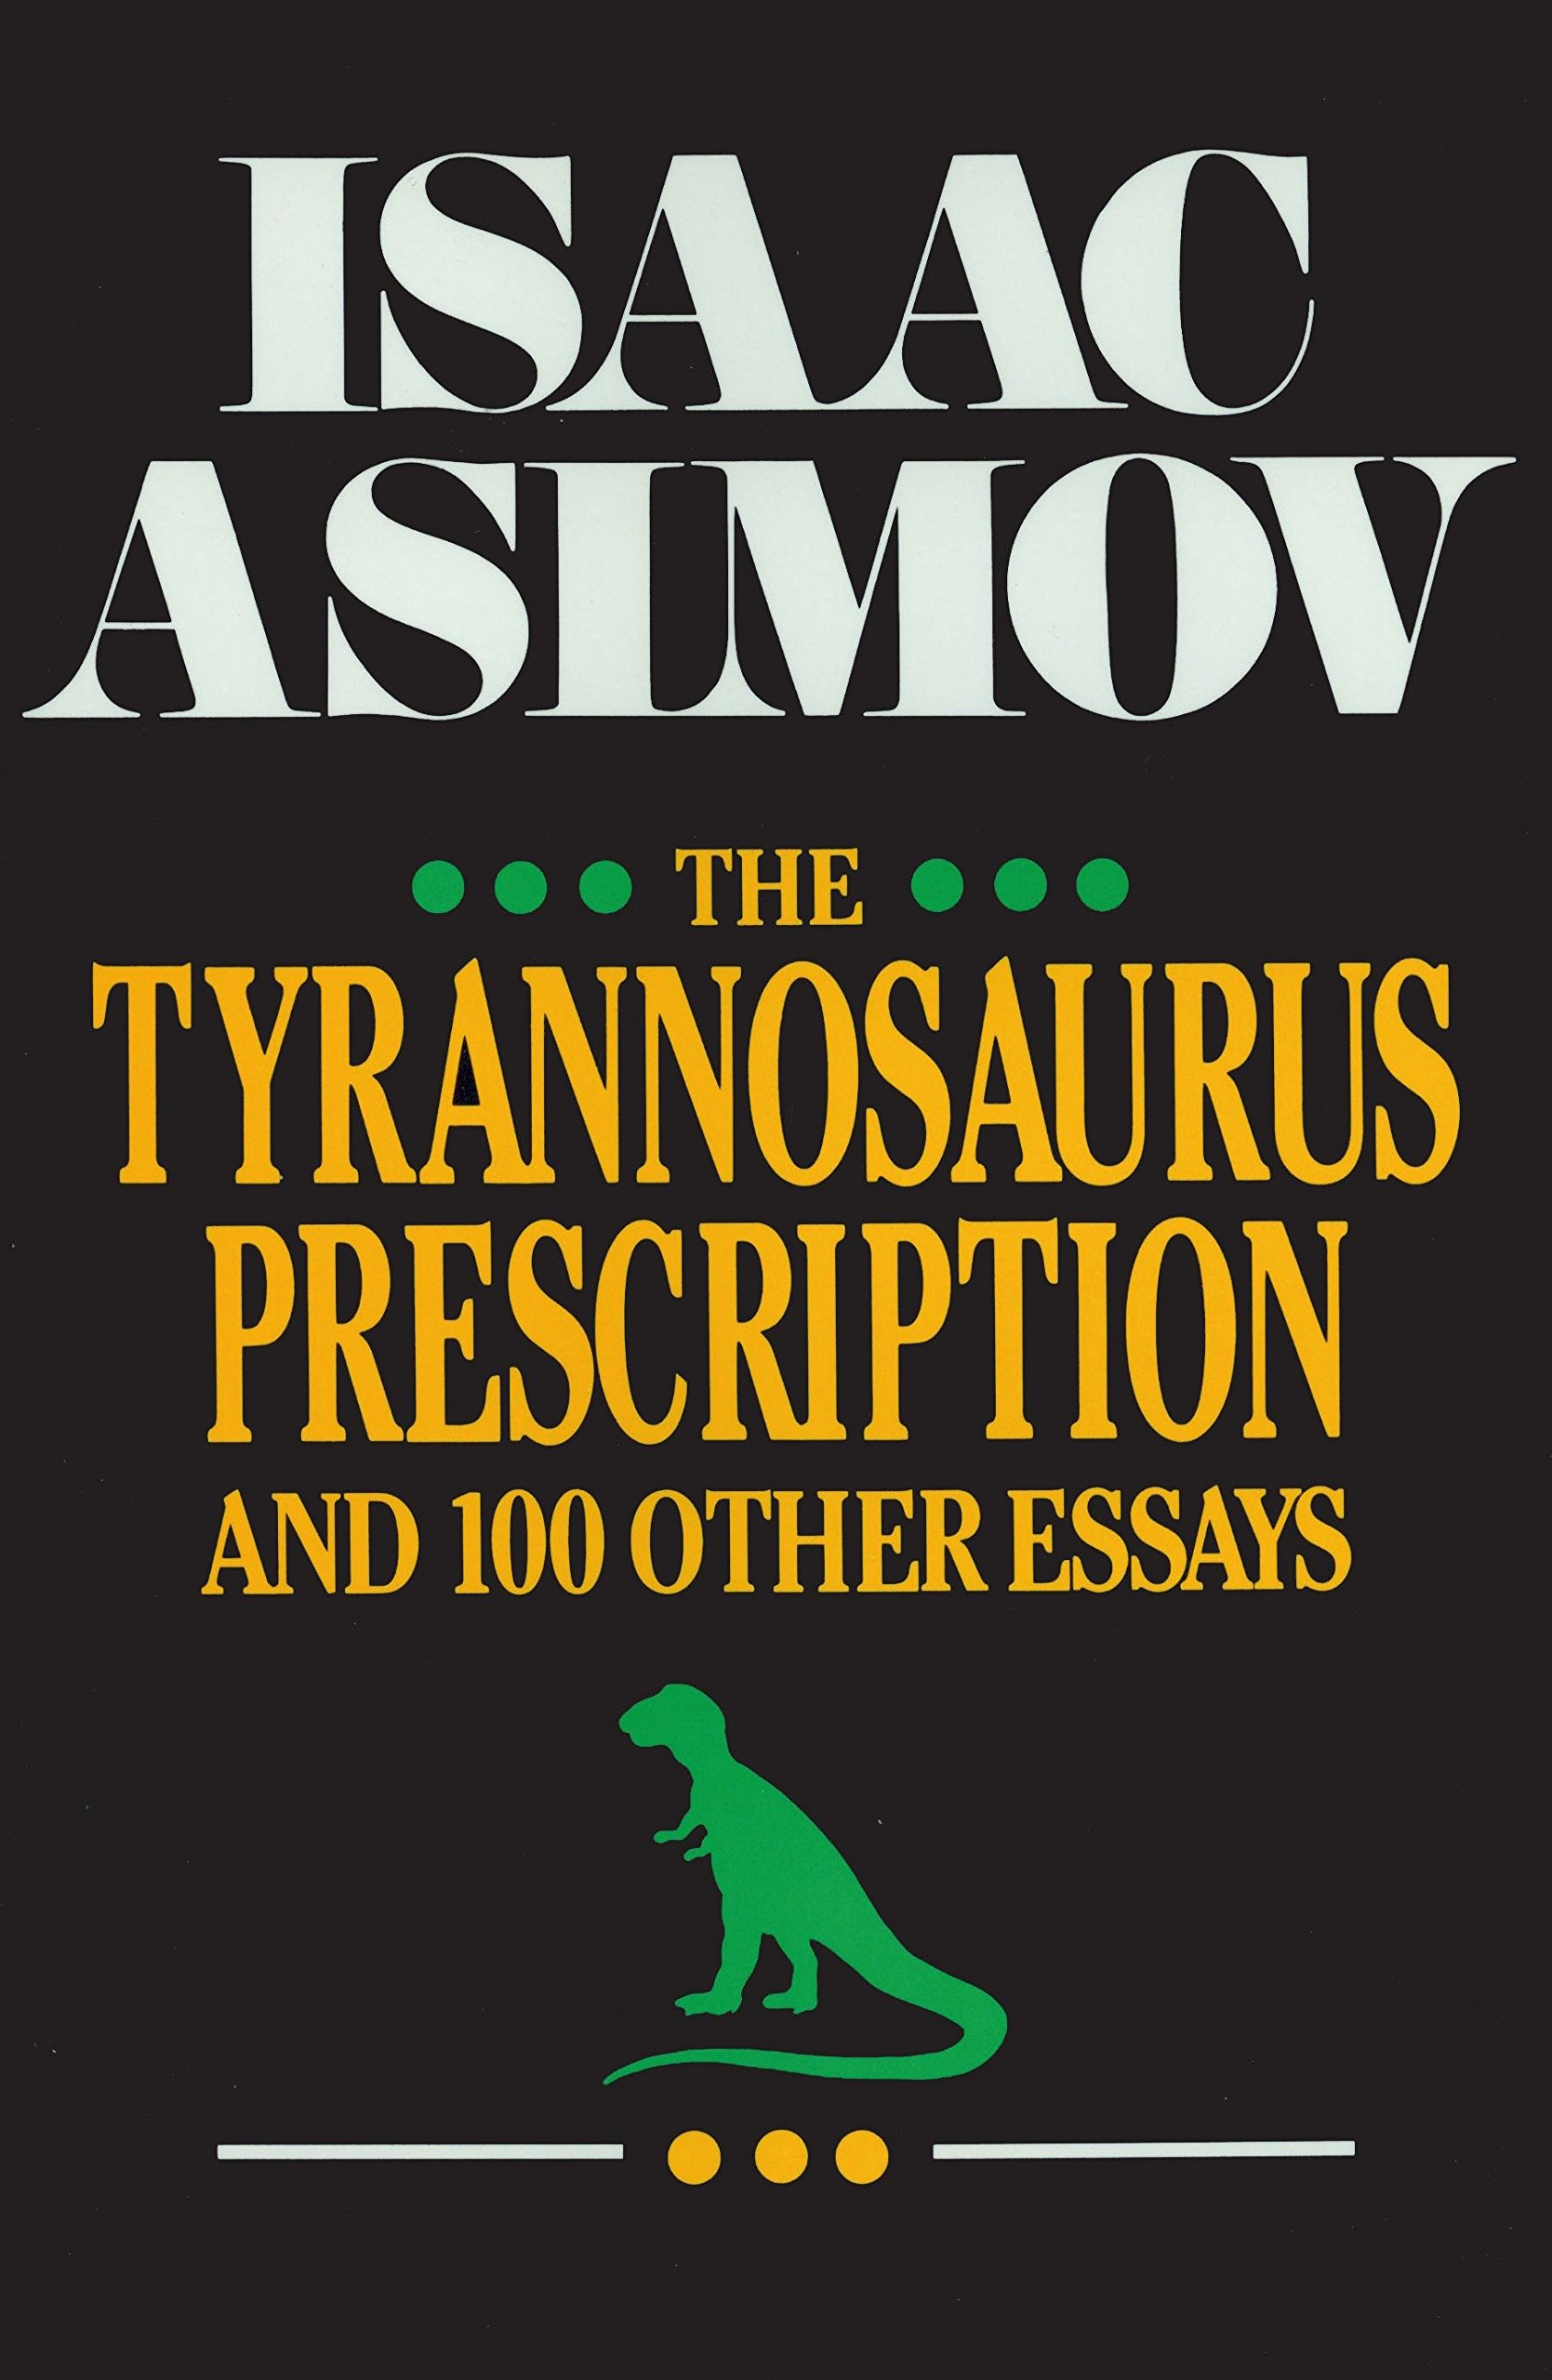 The Tyrannosaurus Prescription: Isaac Asimov: 9780879755409: Amazon ...